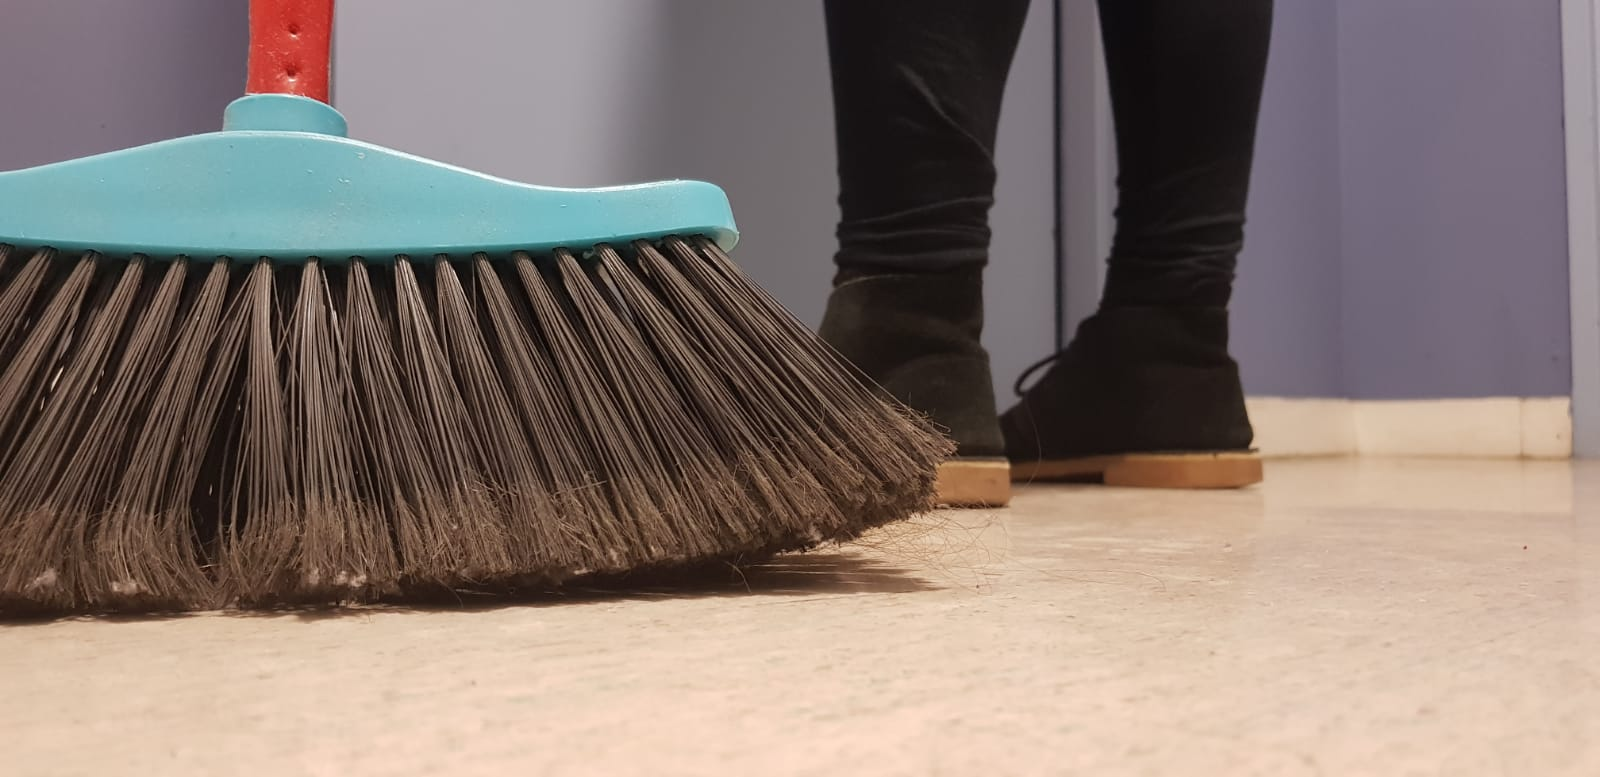 a broom on the floor